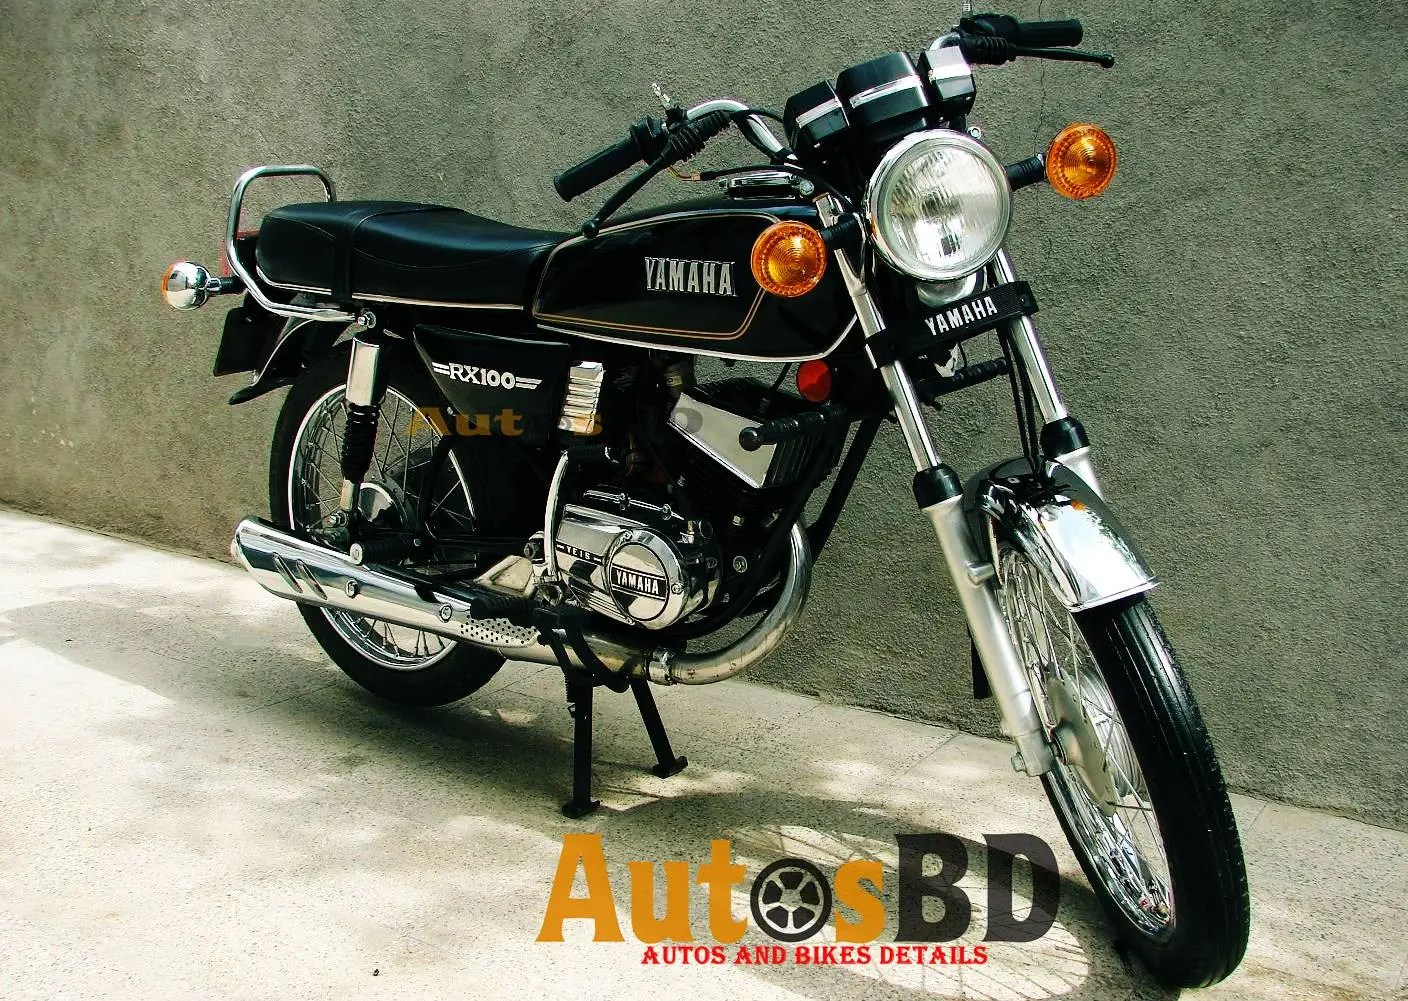 Yamaha RX 100 Motorcycle Specification